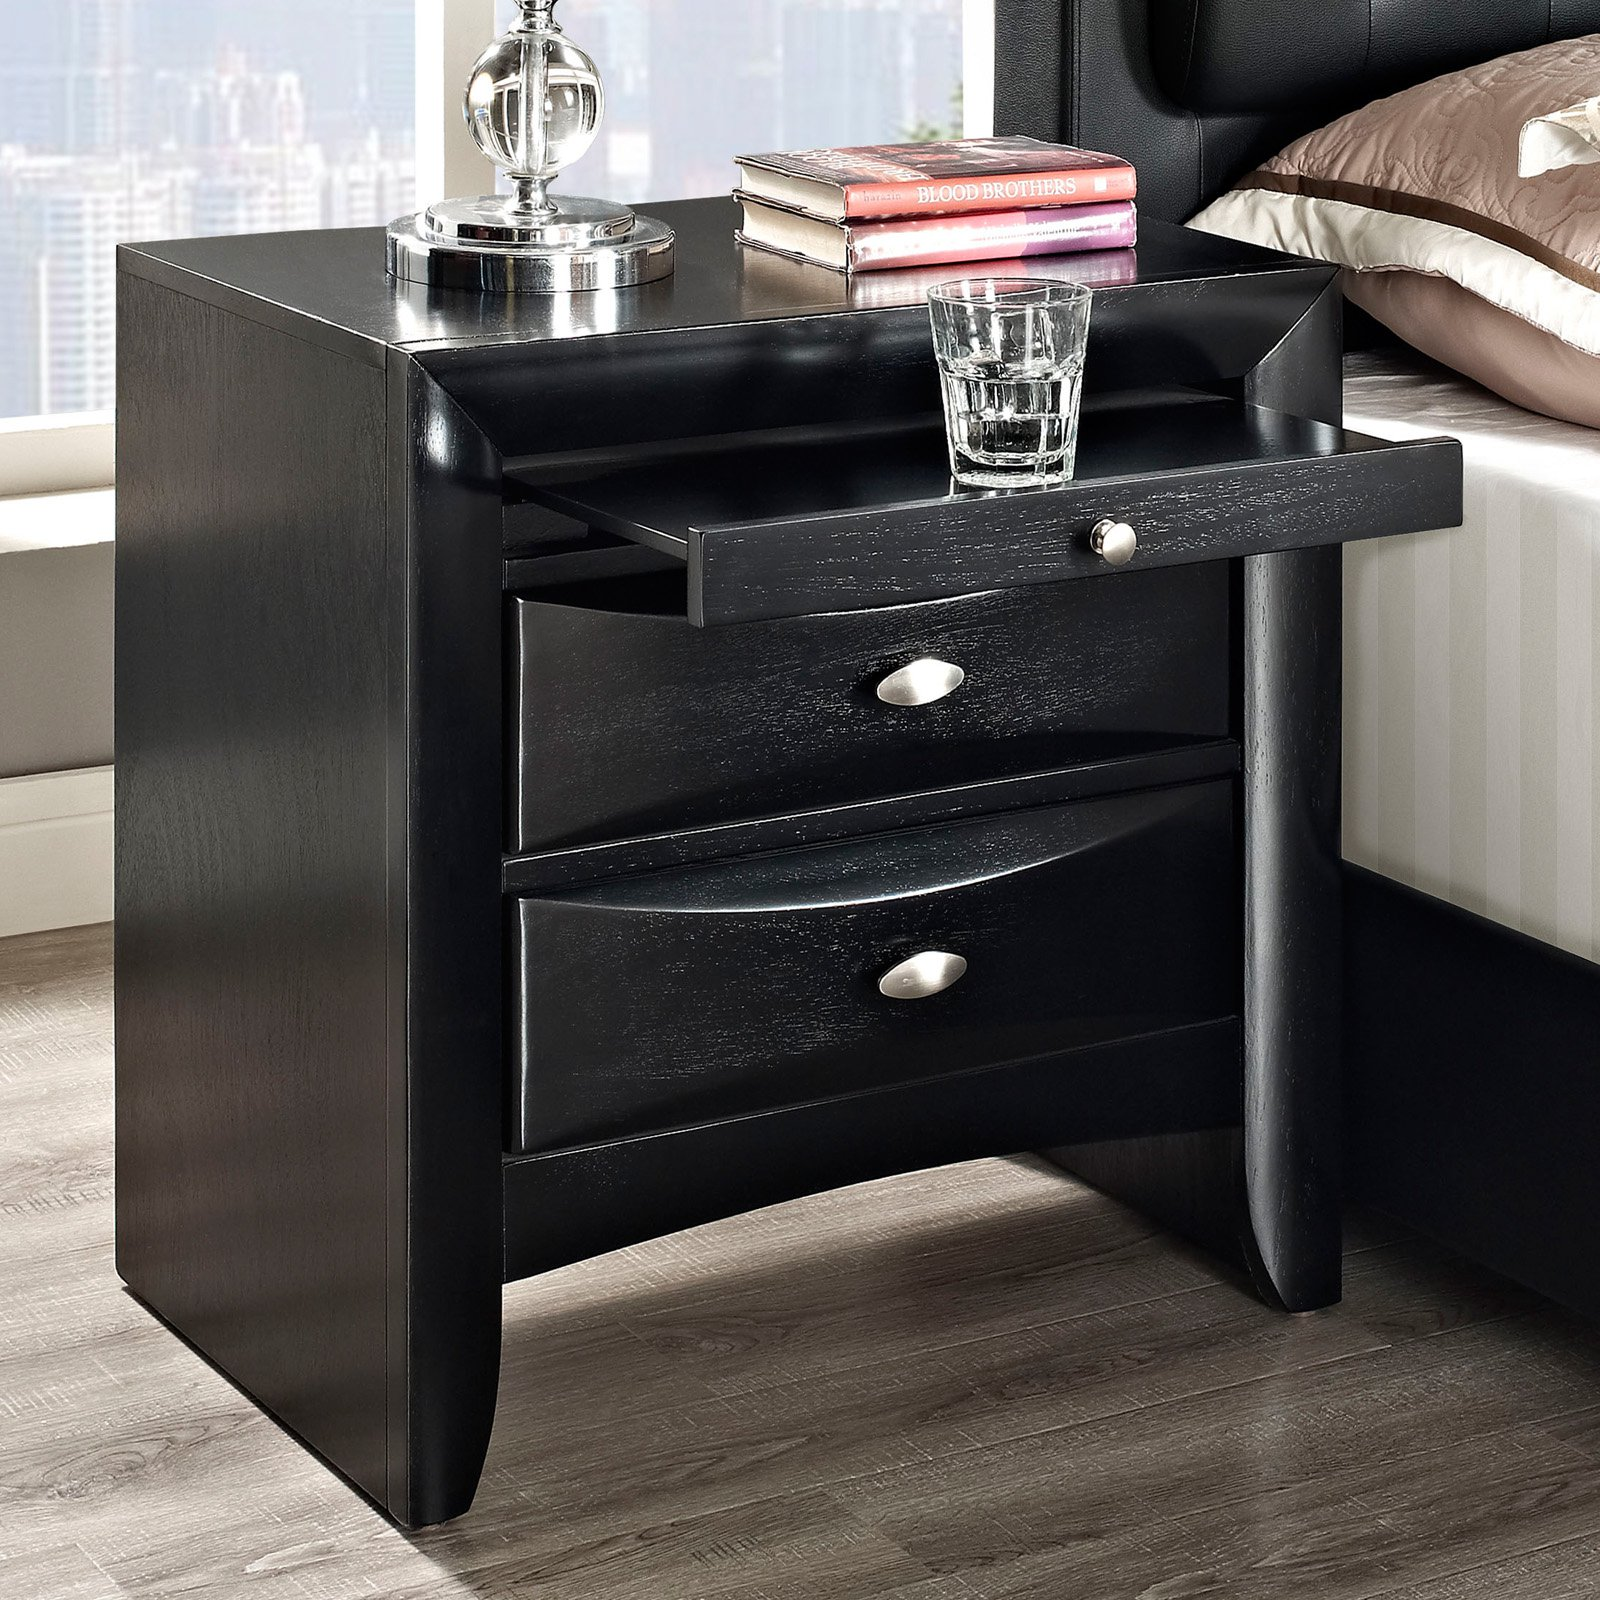 Modway Harrison Contemporary 2-Drawer Nightstand in Black